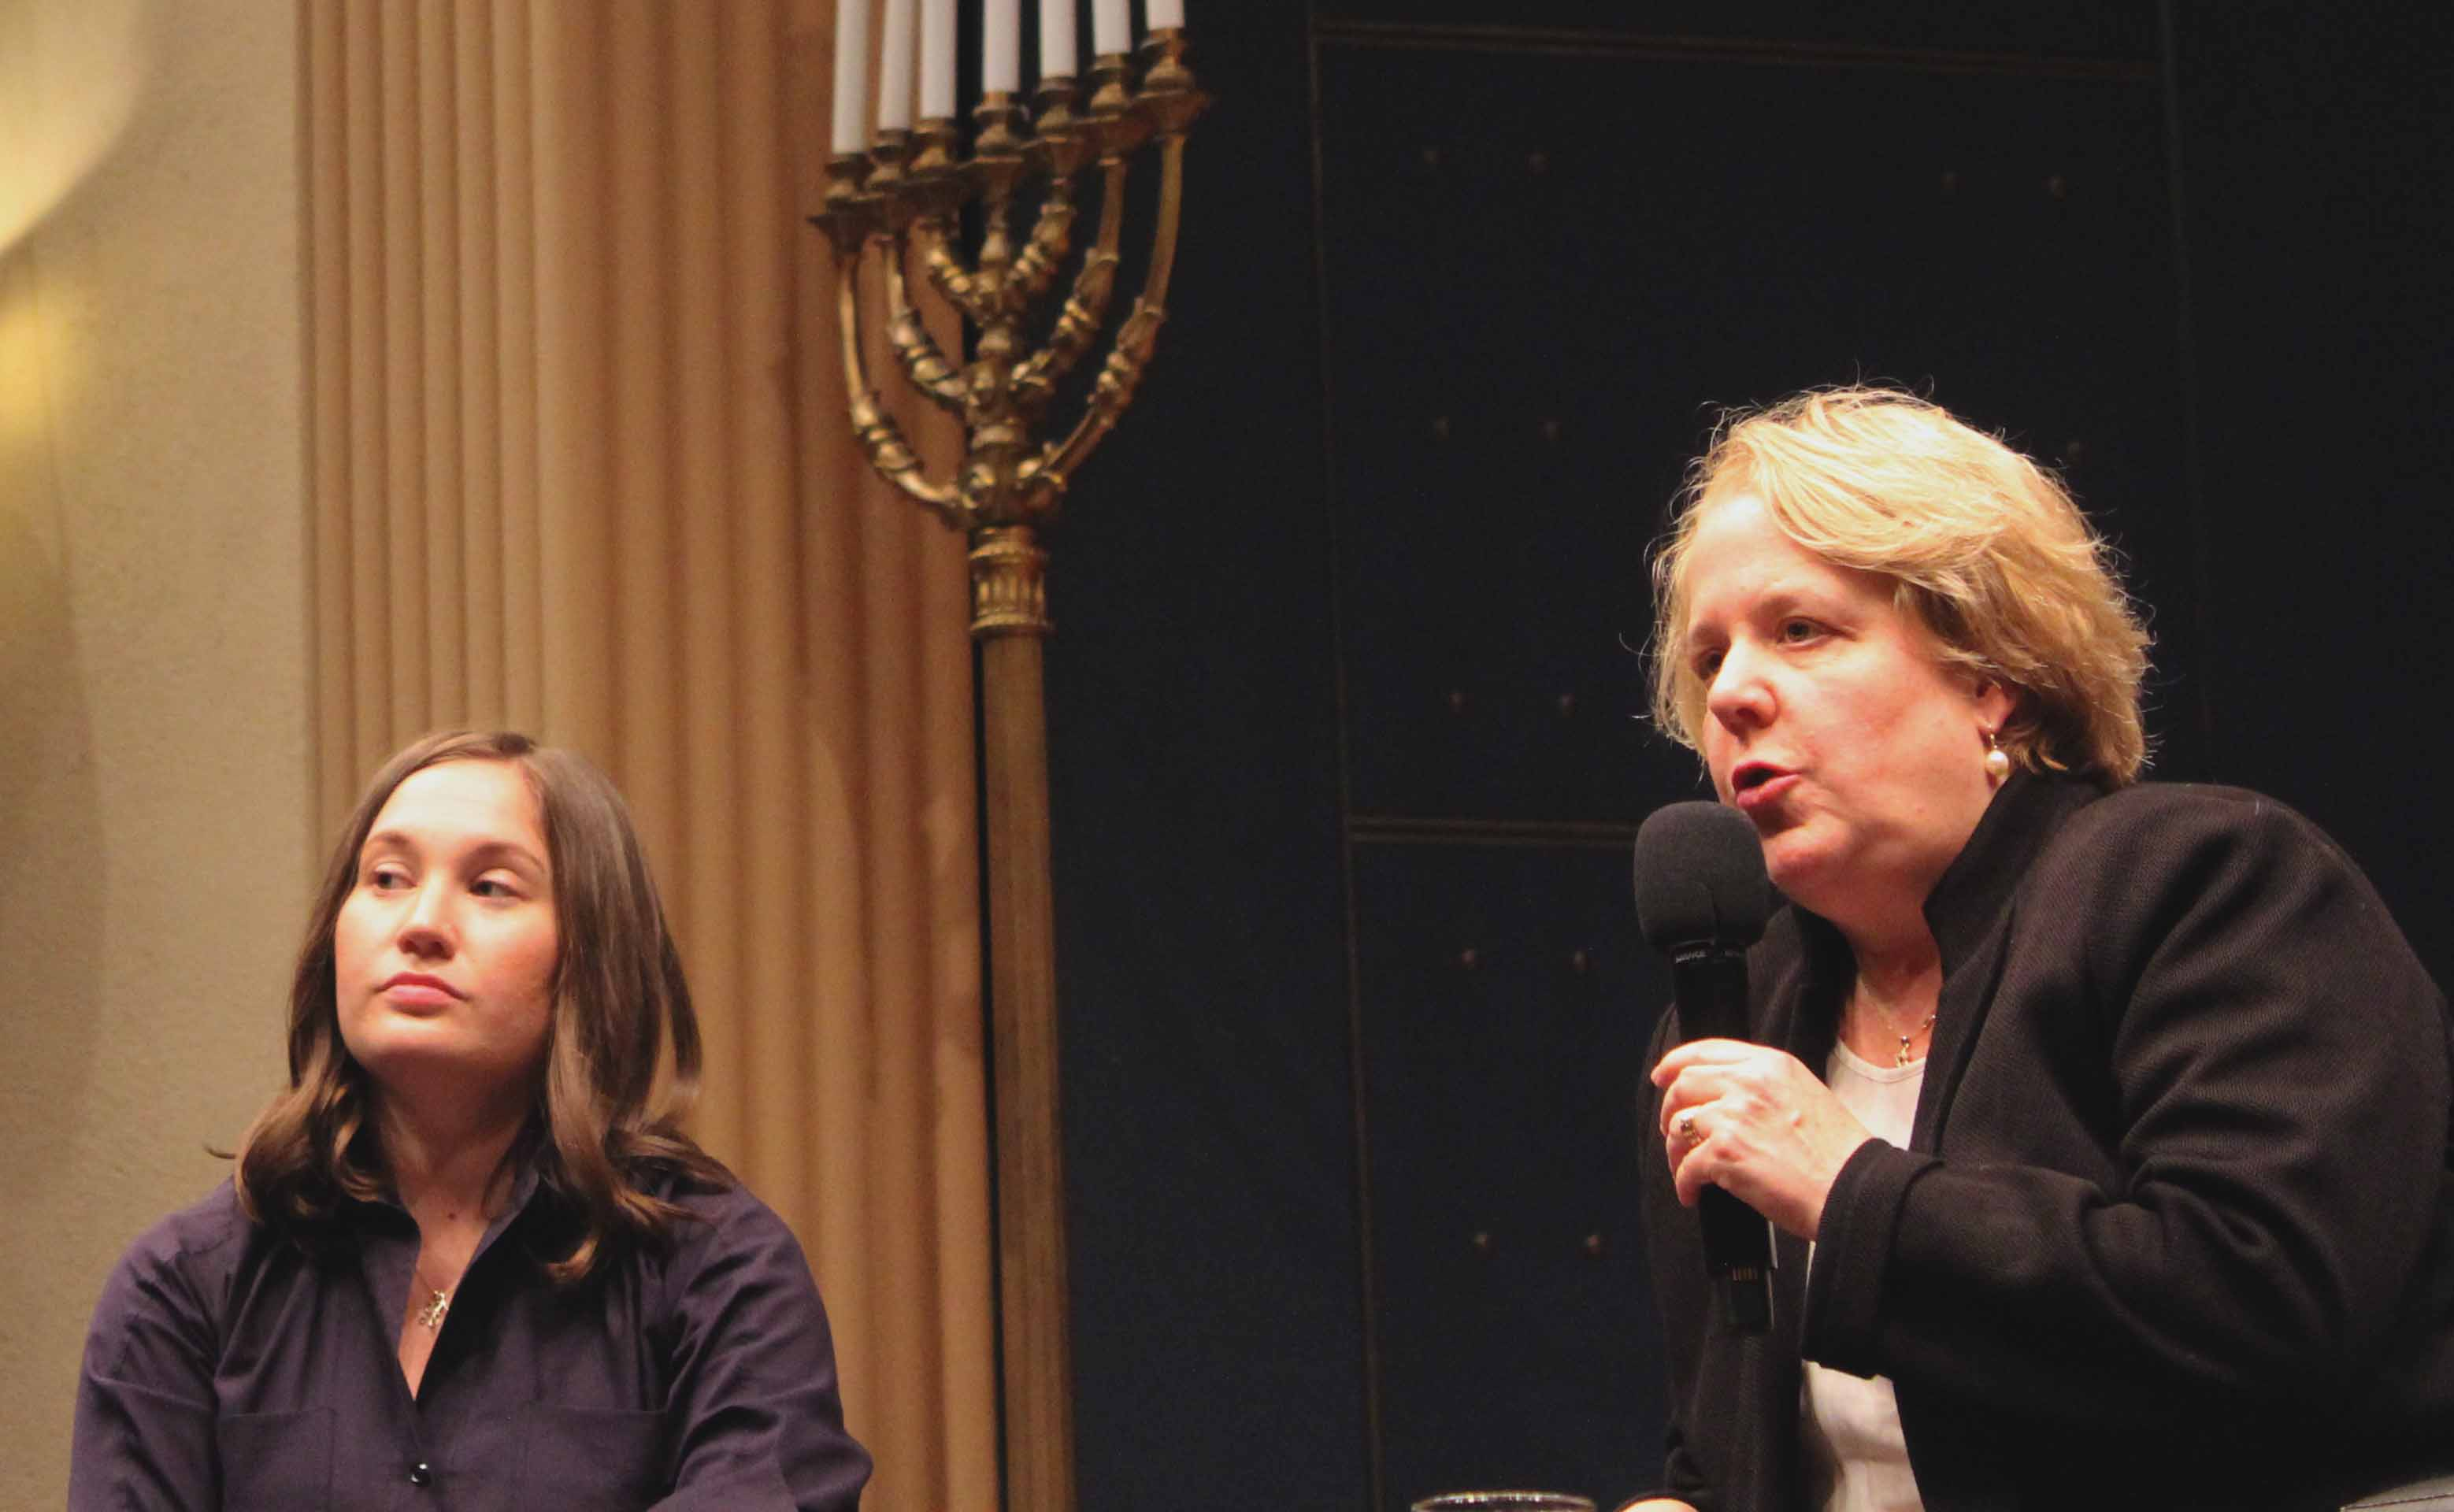 (From left) Integrity First for America Executive Director Amy Spitalnick and attorney Roberta Kaplan speak at Congregation Emanu-El on Nov. 13, 2019. (Gabriel Greschler)